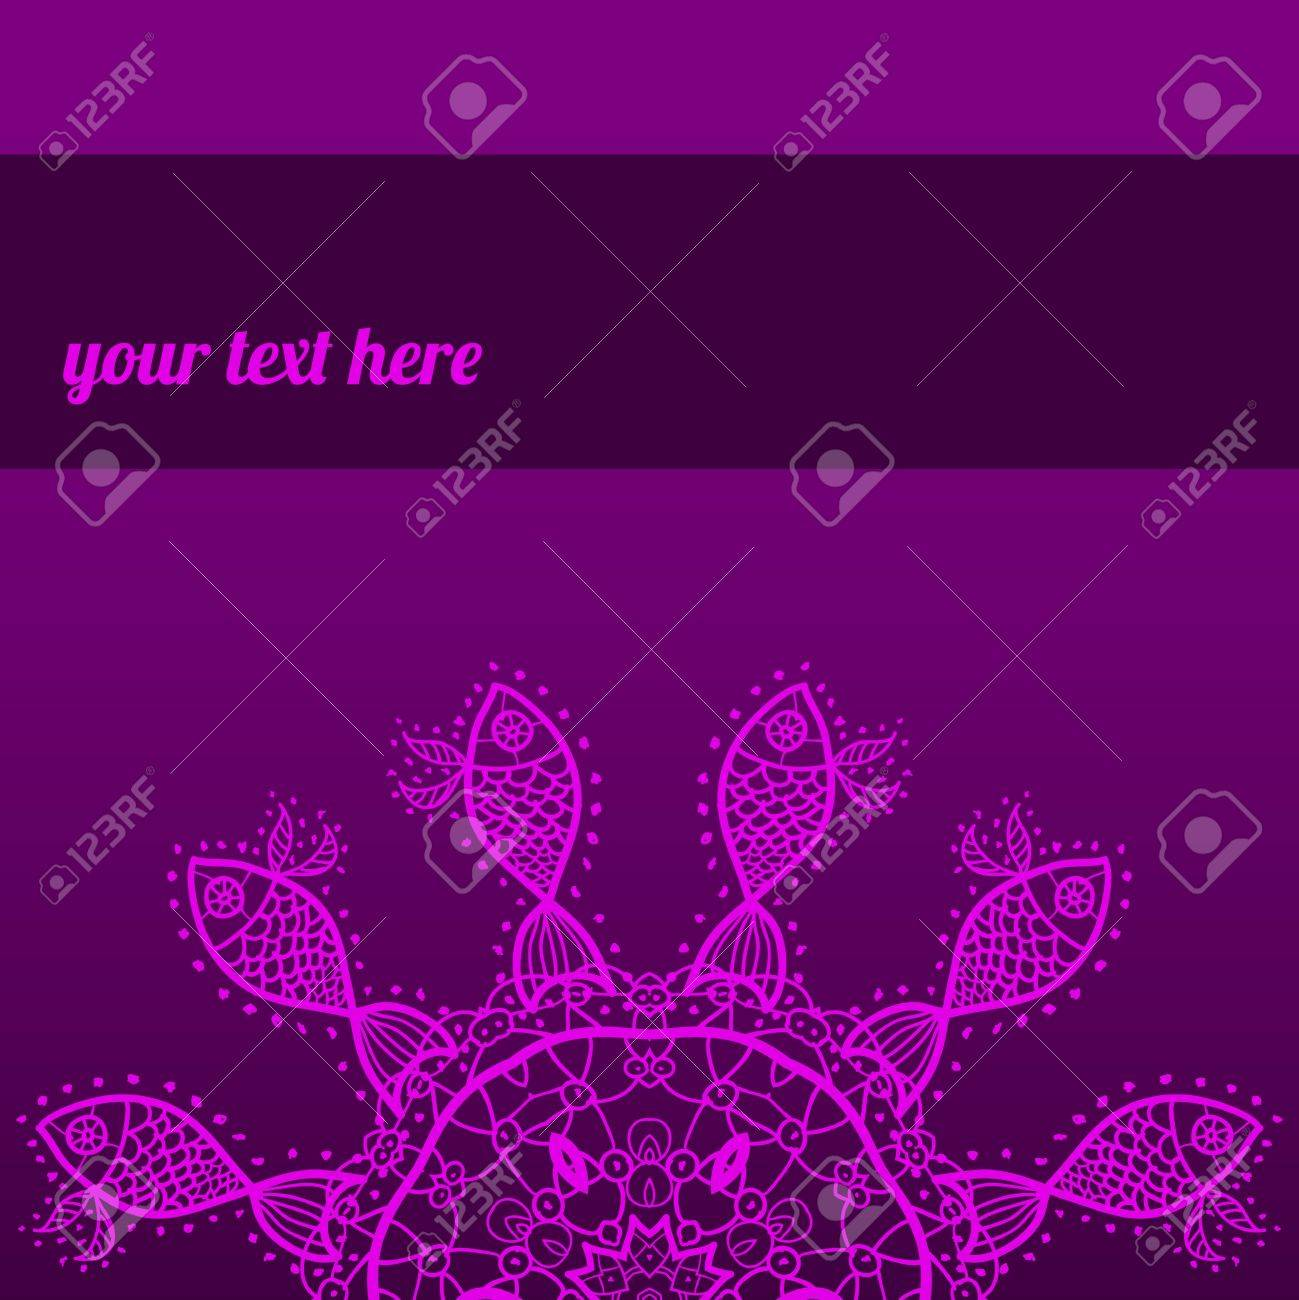 Ornate ornamental indian half mandala frame for text in pink color  Perfect as invitation or announcement  Easy to change colors and edit Stock Vector - 18471800